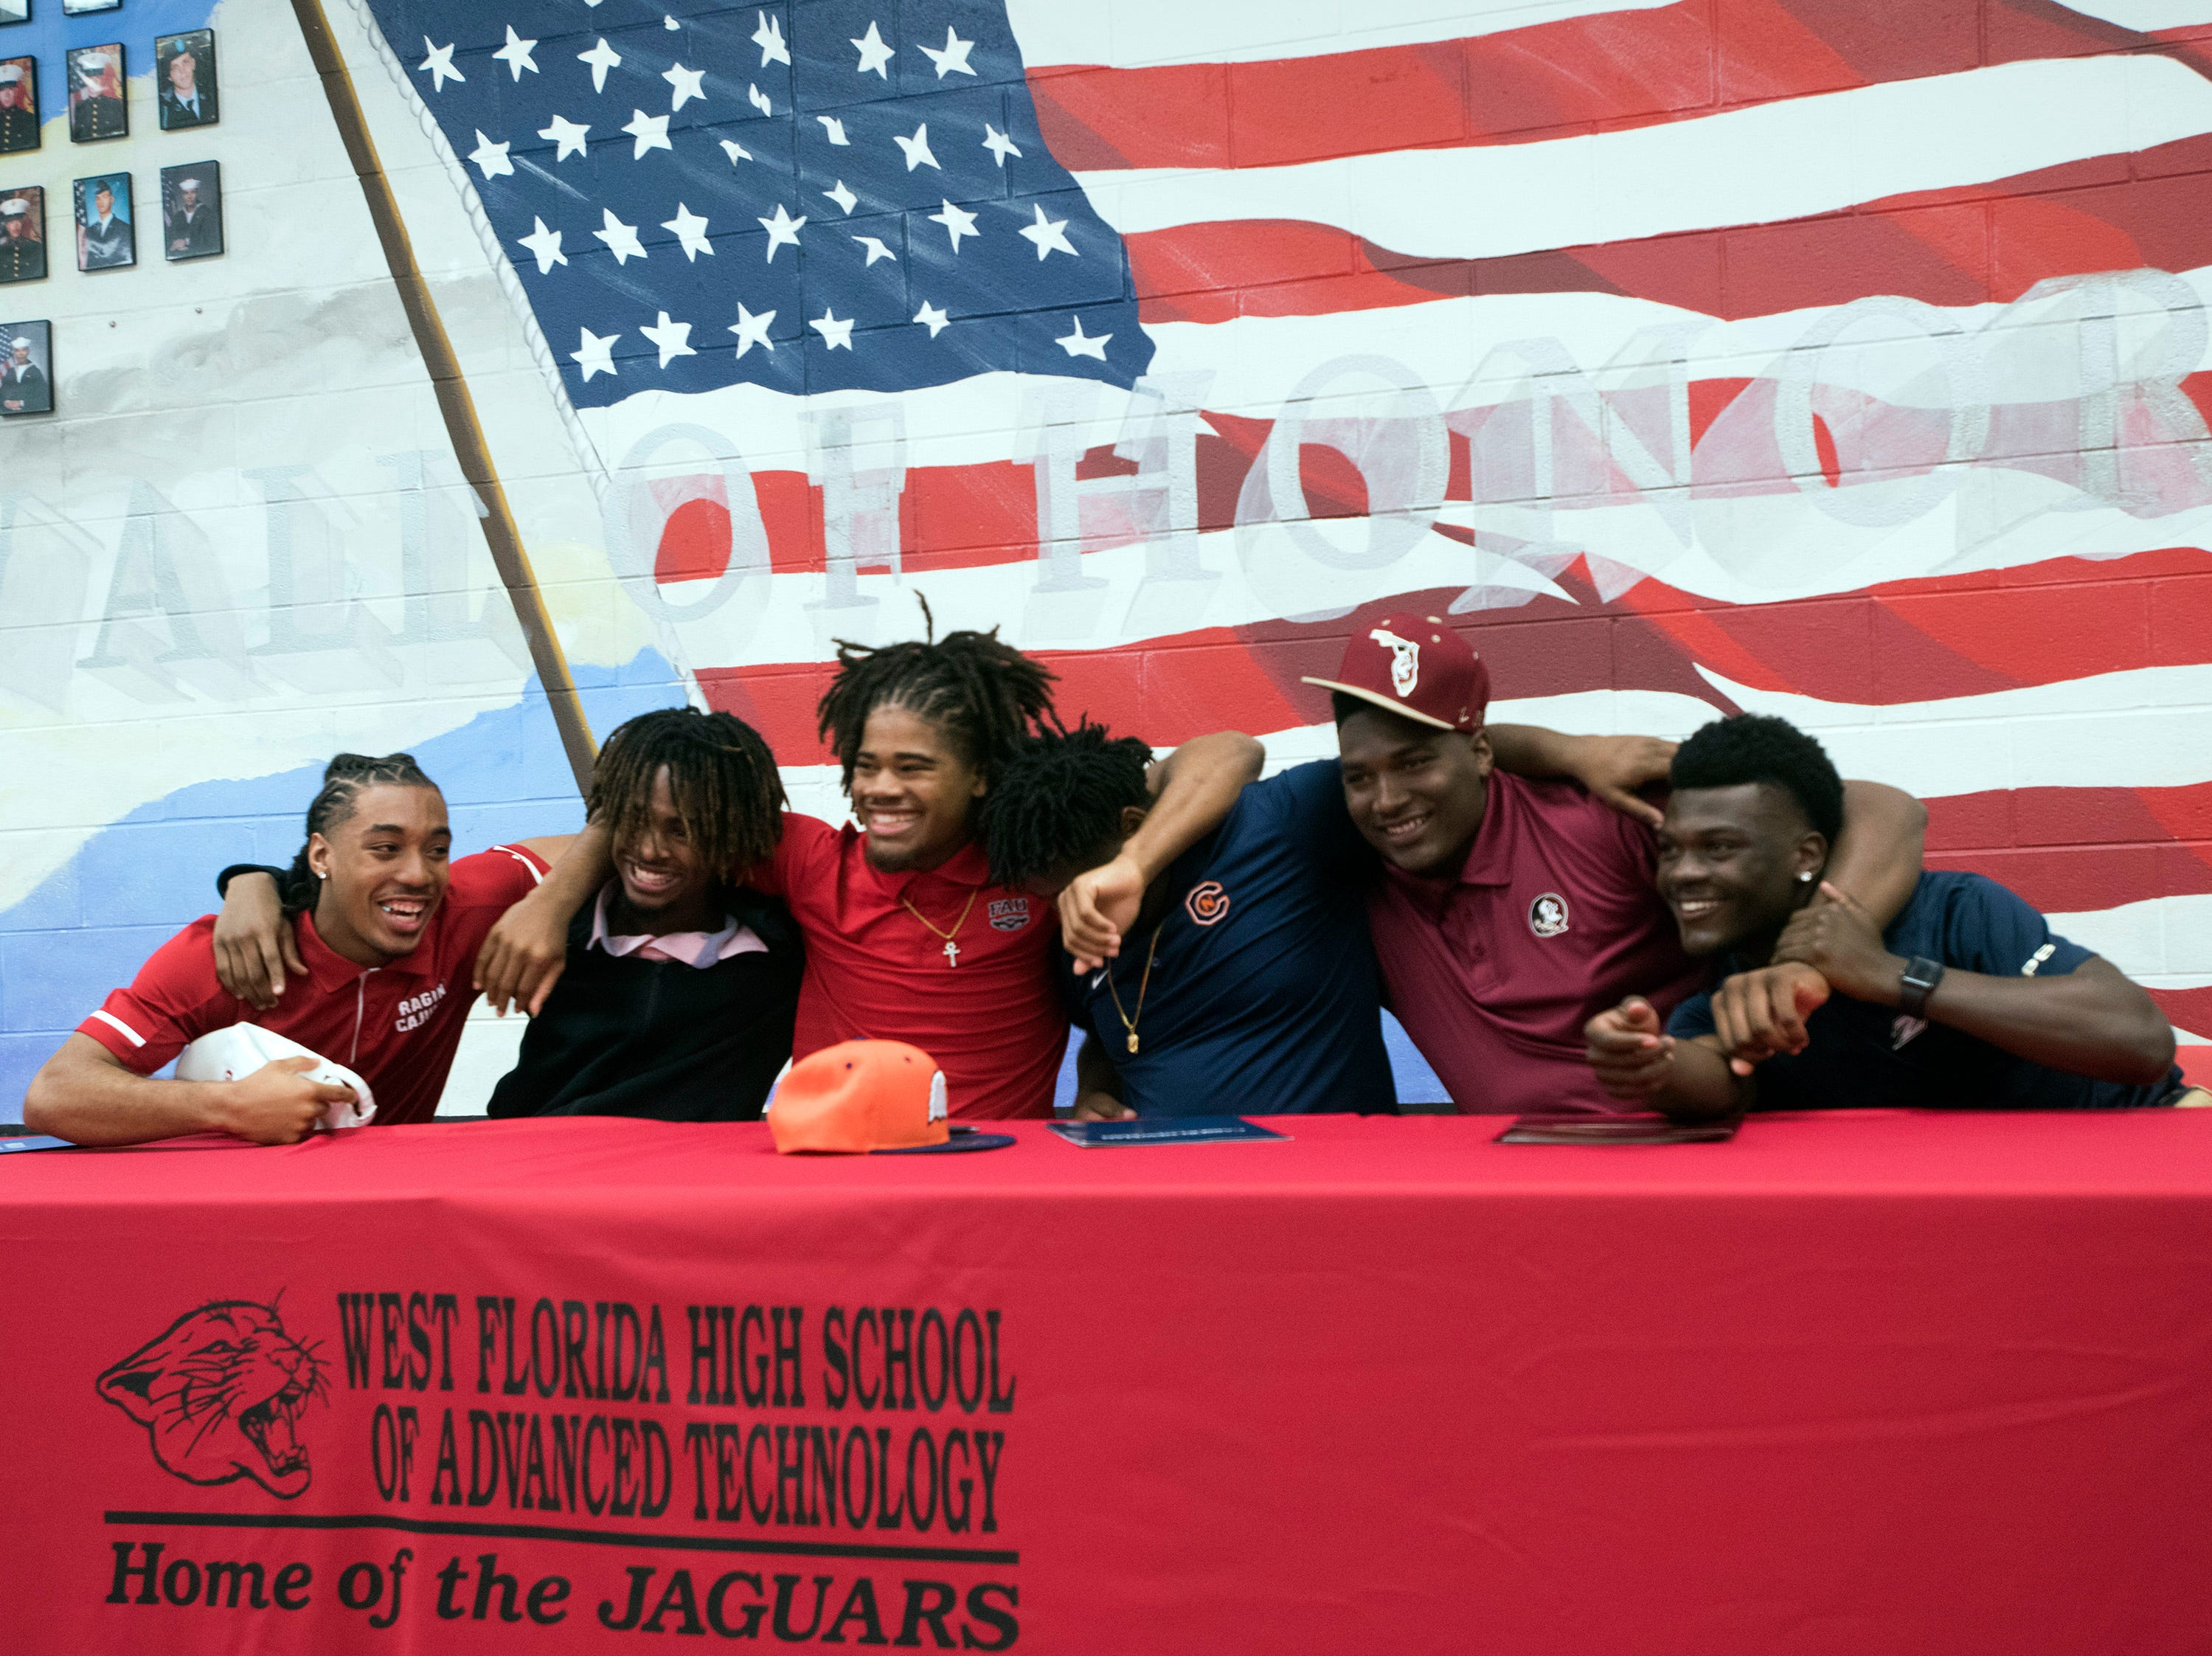 The 2019 National Signing Day class at West Florida High School celebrates their accomplishments during a ceremony at the school on Wednesday, Feb. 6, 2019.